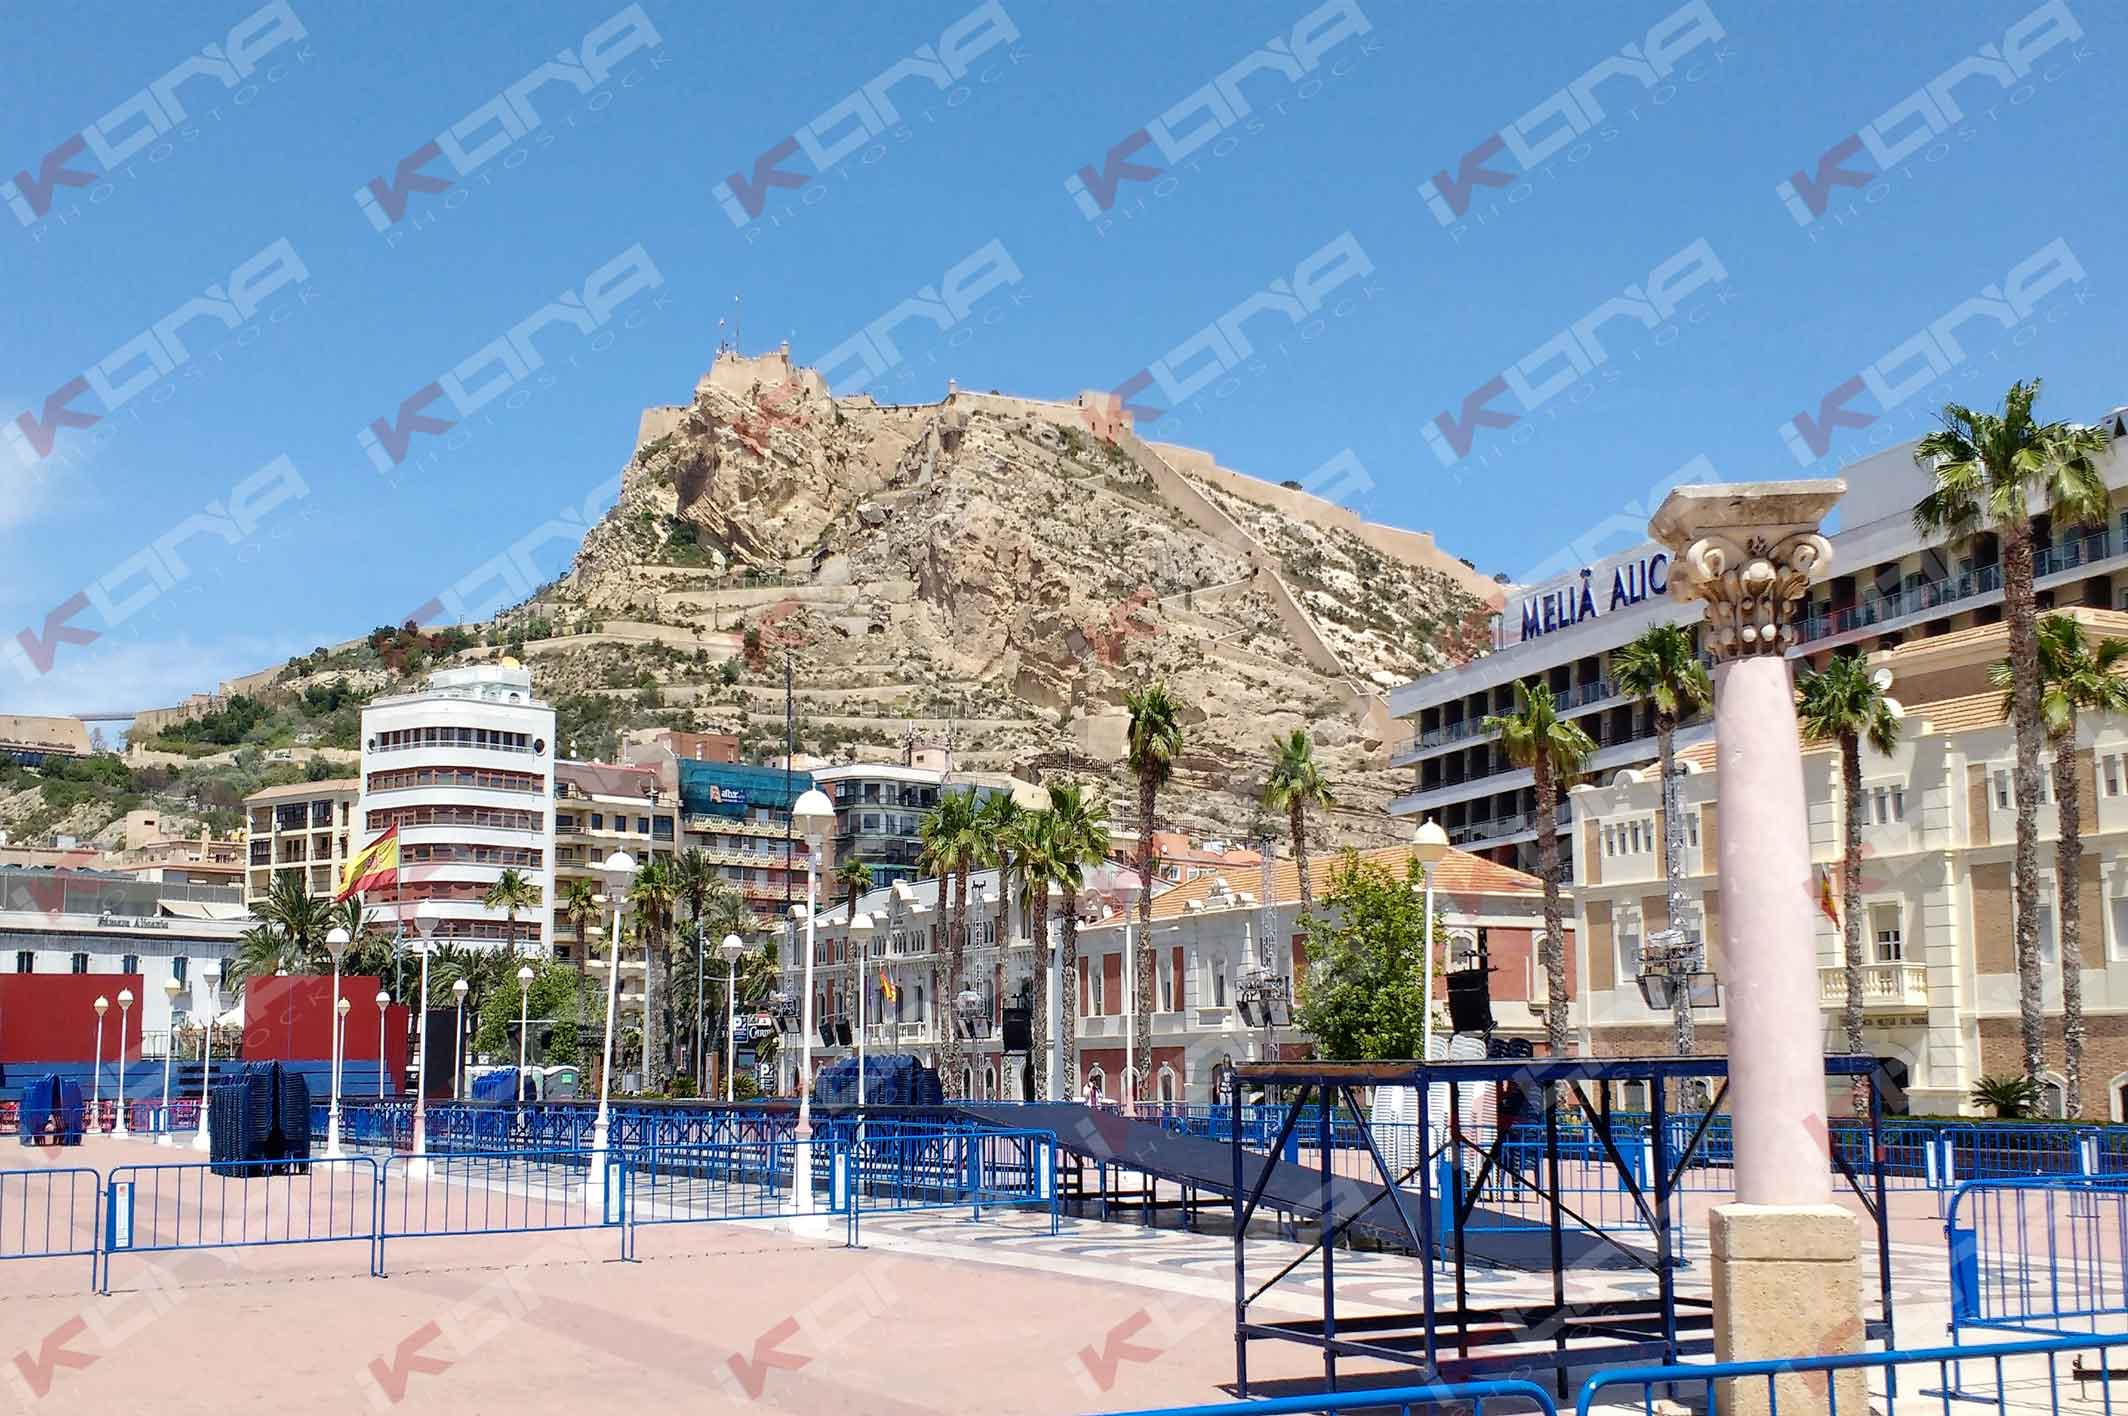 Alicante spain ikona stock images royalty free images - Stock uno alicante ...